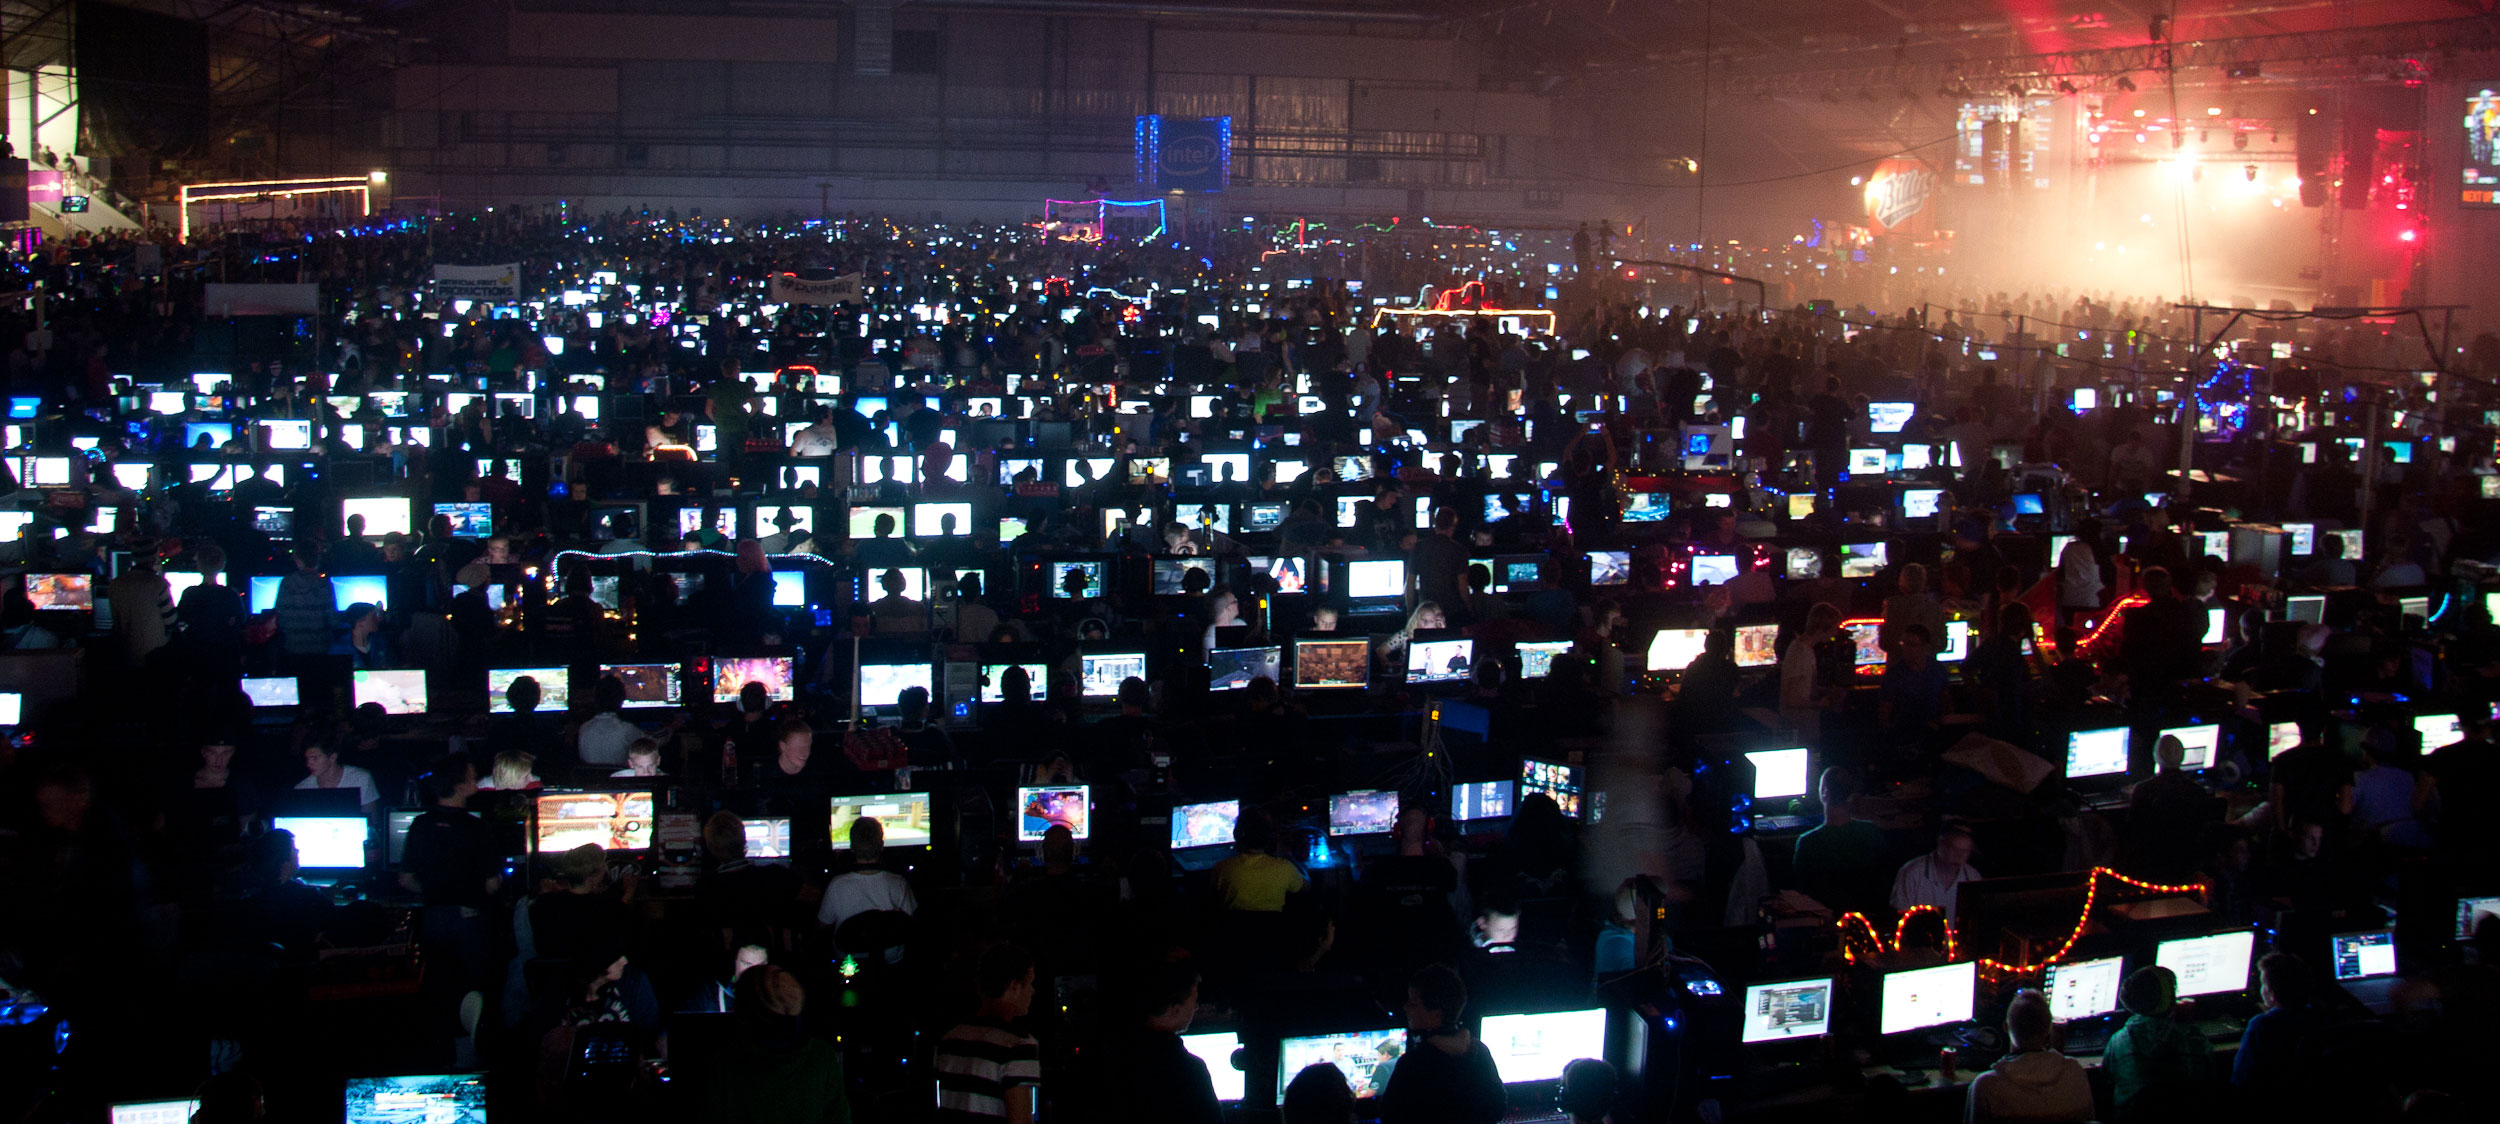 Actual picture from my last LAN party, I swear.